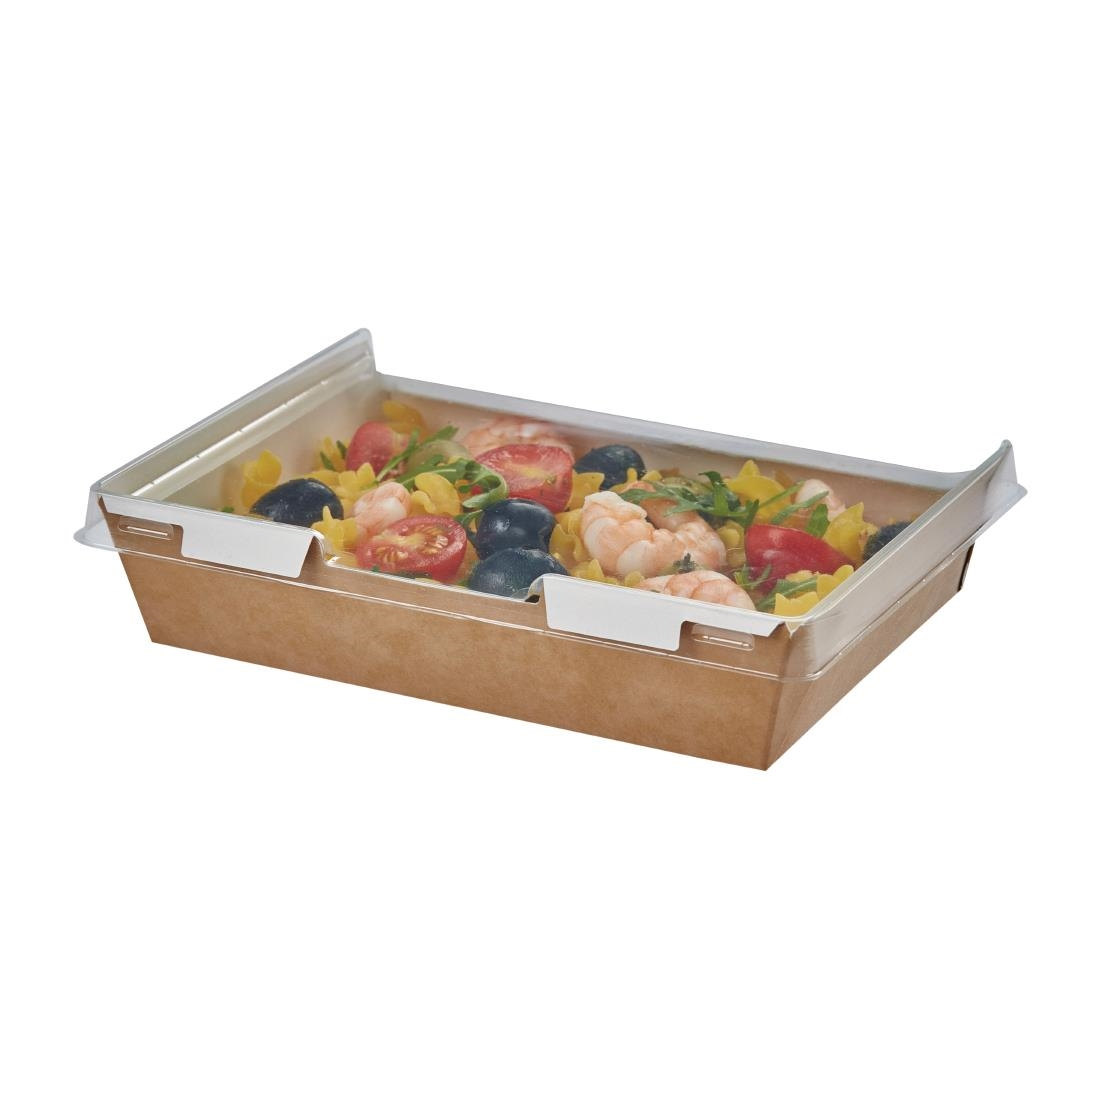 Image of Colpac Combione Recyclable Kraft Food Trays With Lid 1110ml / 39oz (Pack of 200) Pack of 200